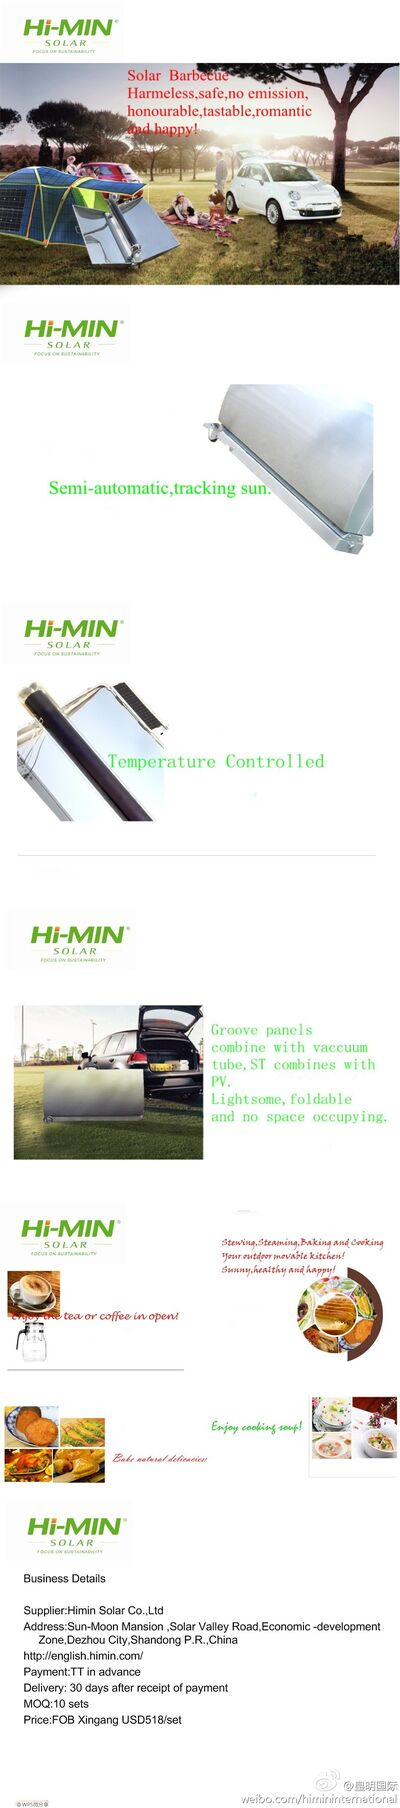 Himin solar barbecue